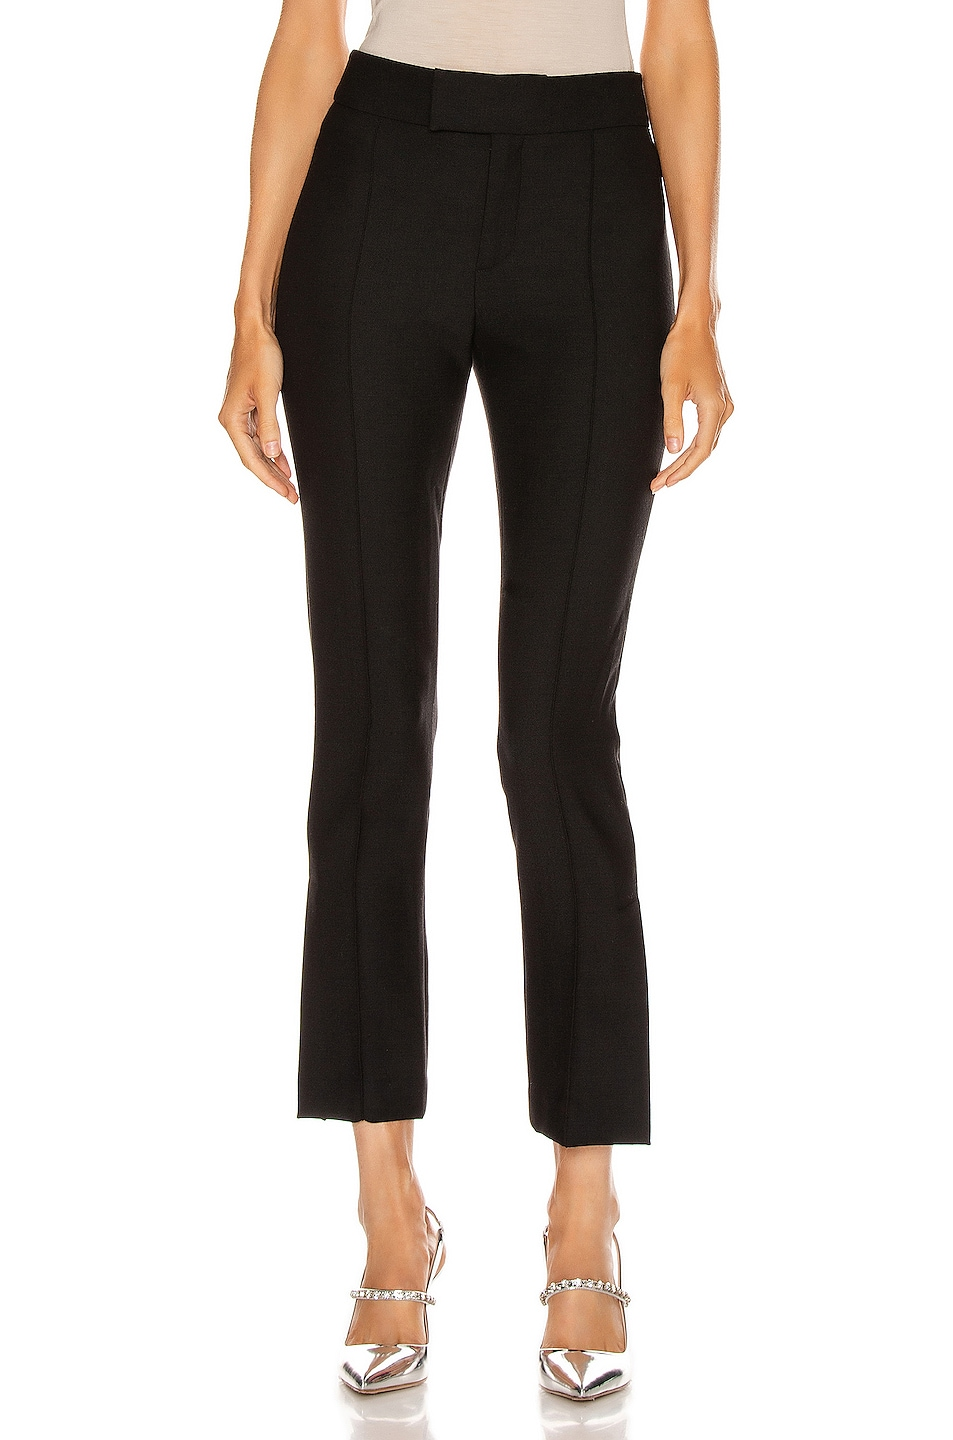 Image 1 of Smythe Stovepipe Pant in Black